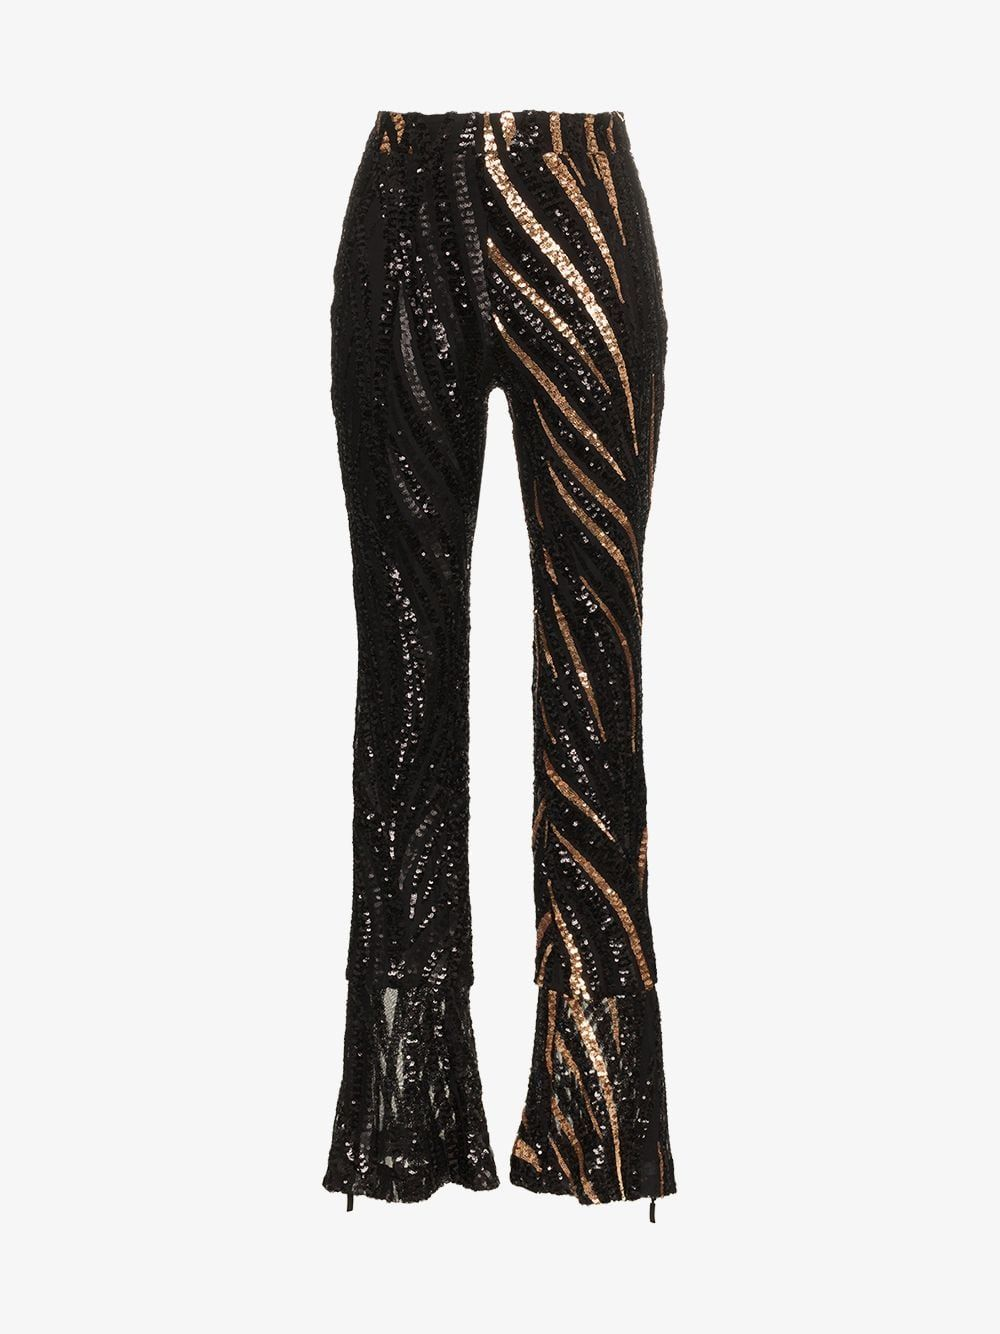 232c181374fb7 Sequin Embellished Slim Fit Trousers in 2019 | Who's That Girl ...